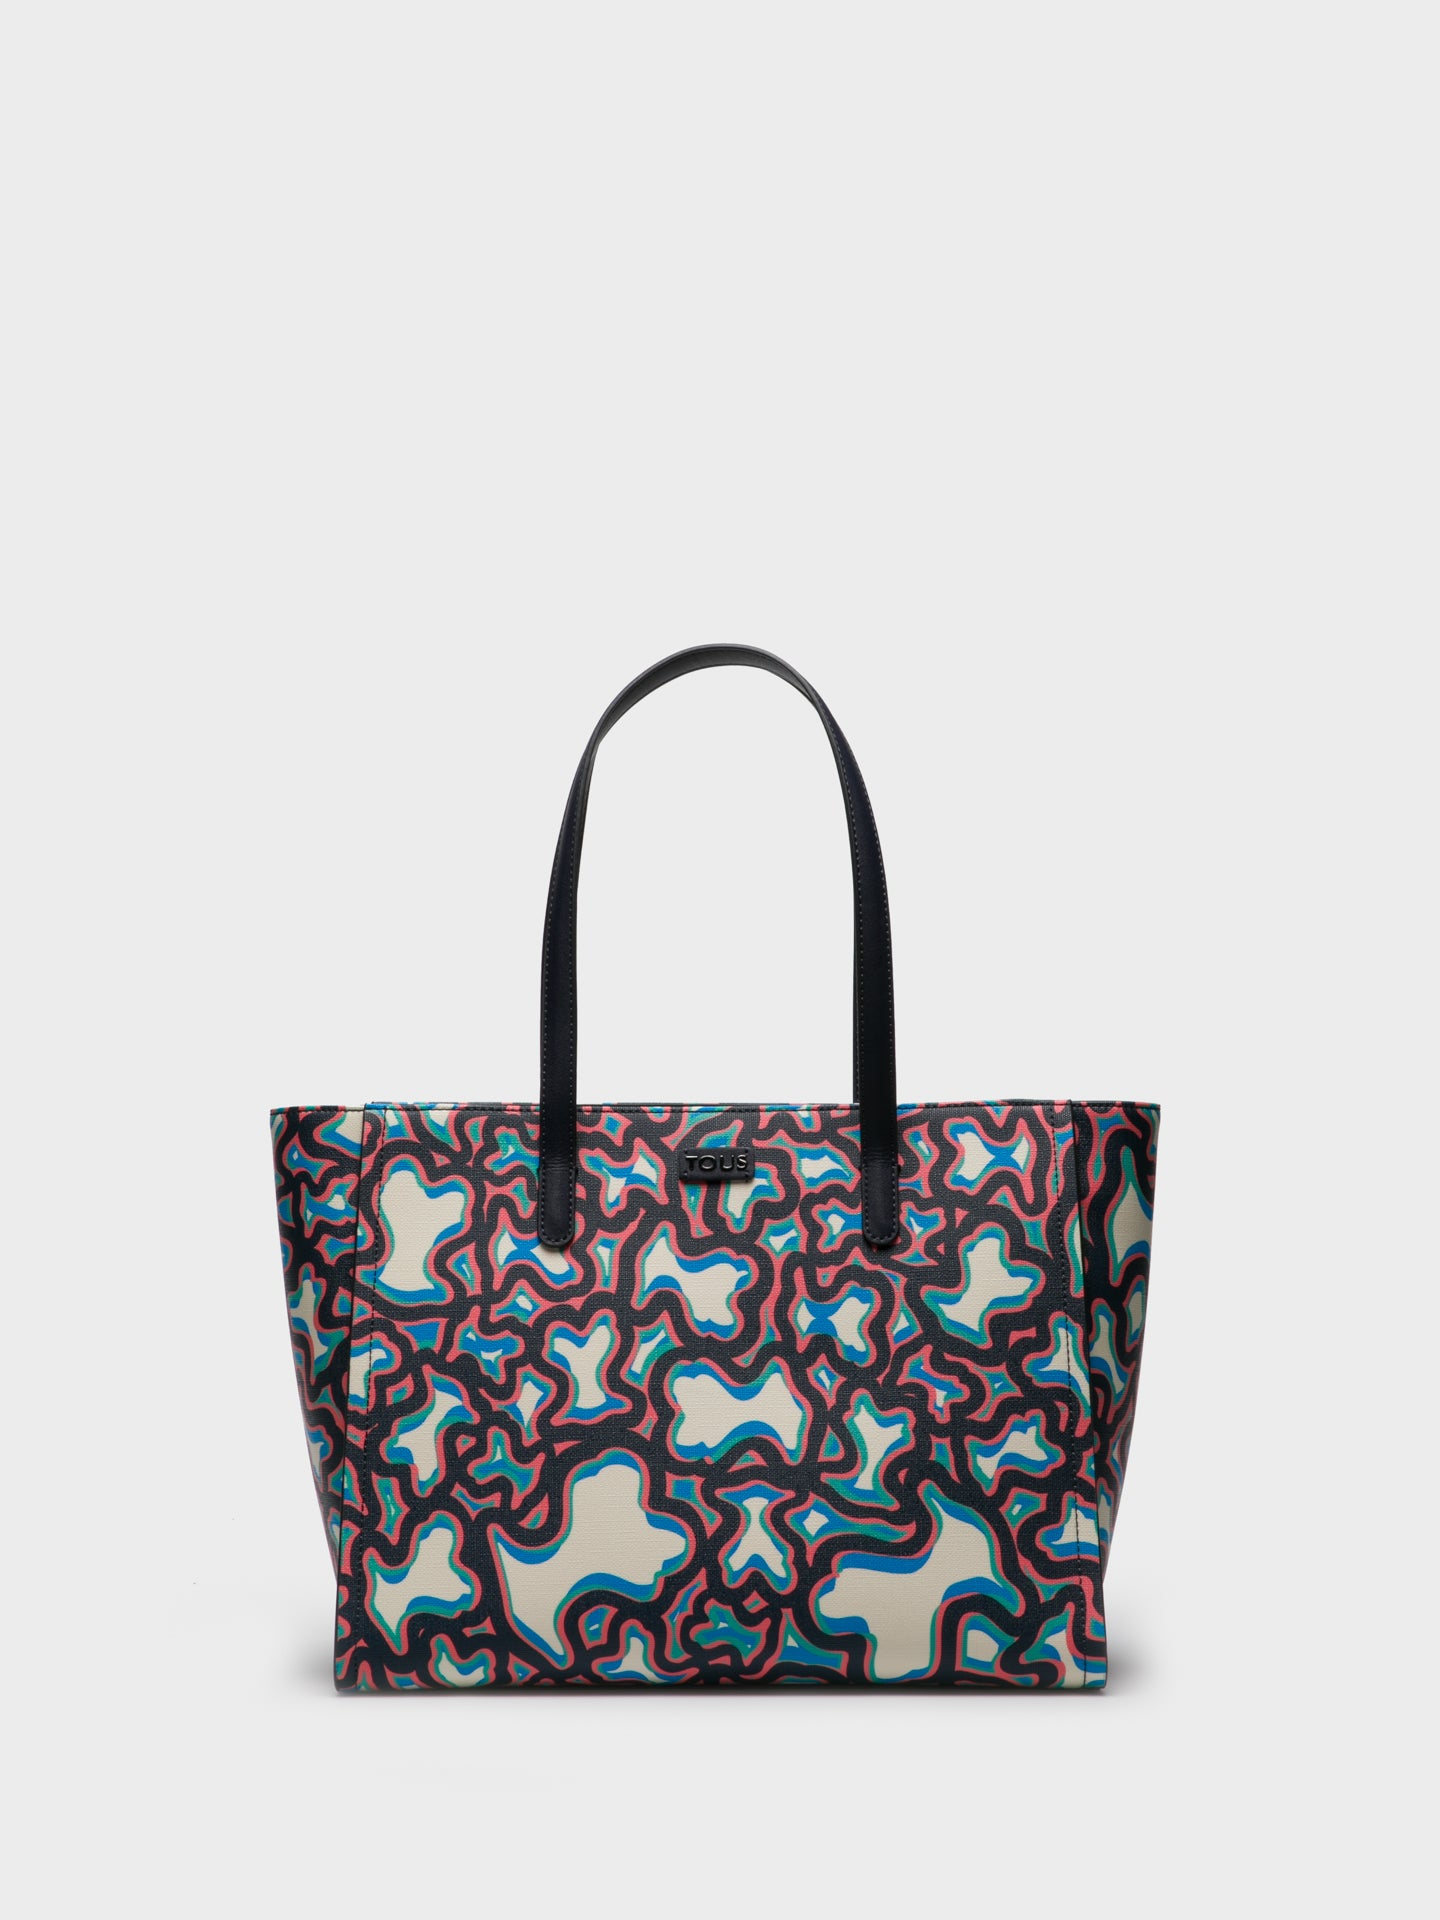 TOUS Multicolor Shoulder Bag